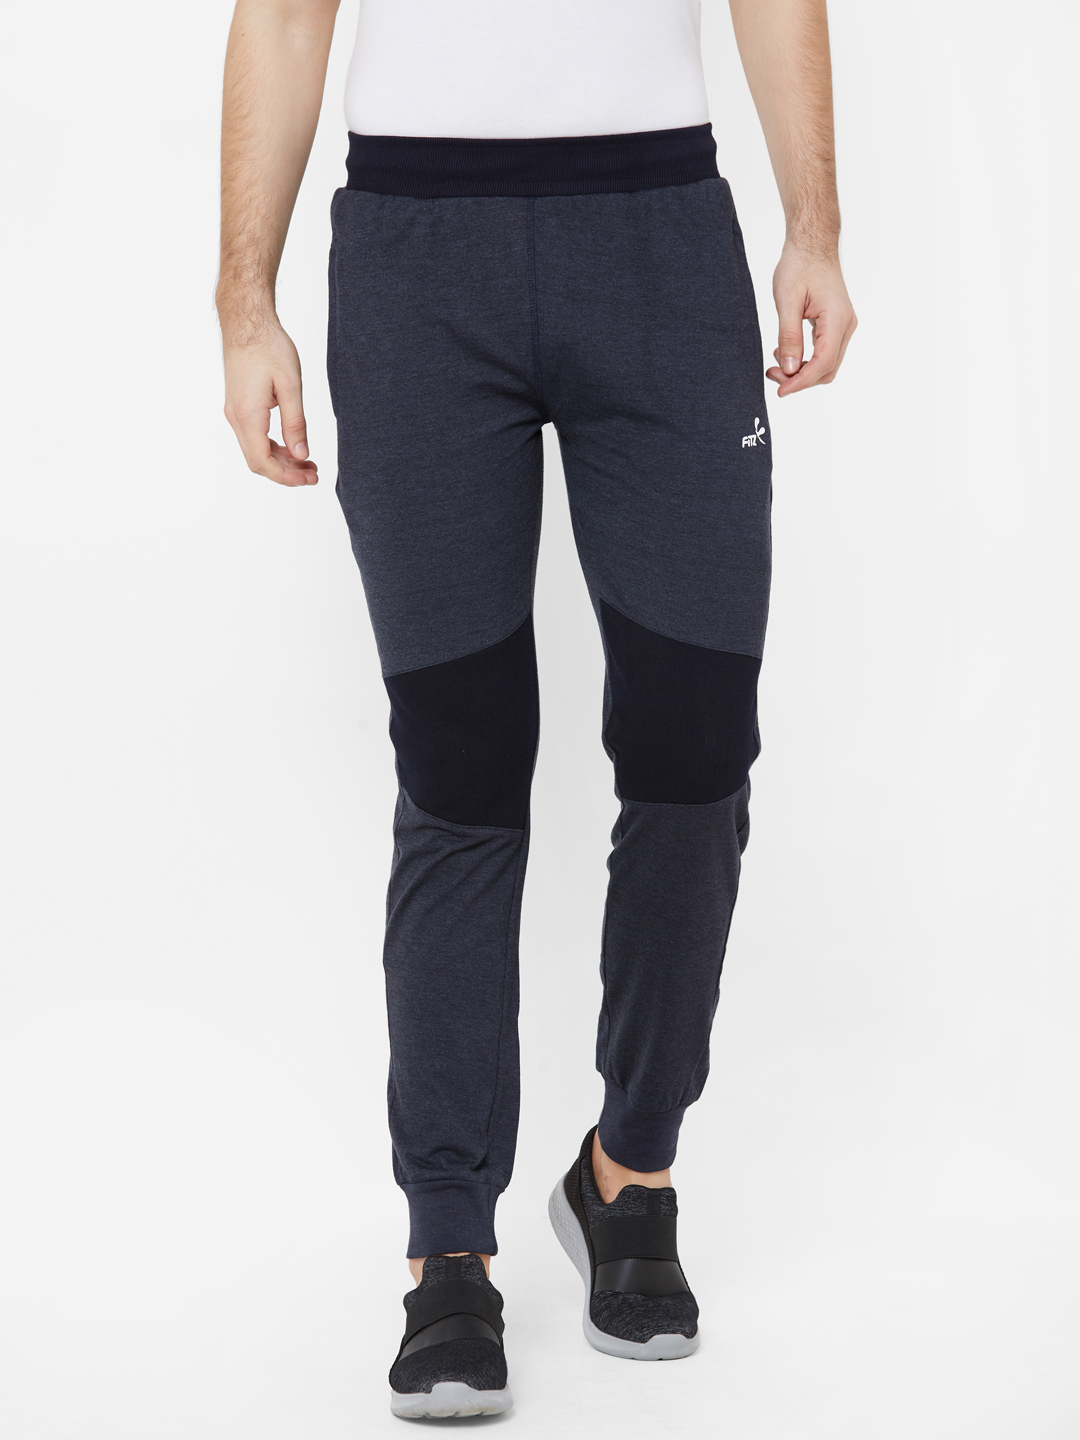 FITZ   Fitz  Cotton Blend Blue Loungewear Joggers Track For Mens